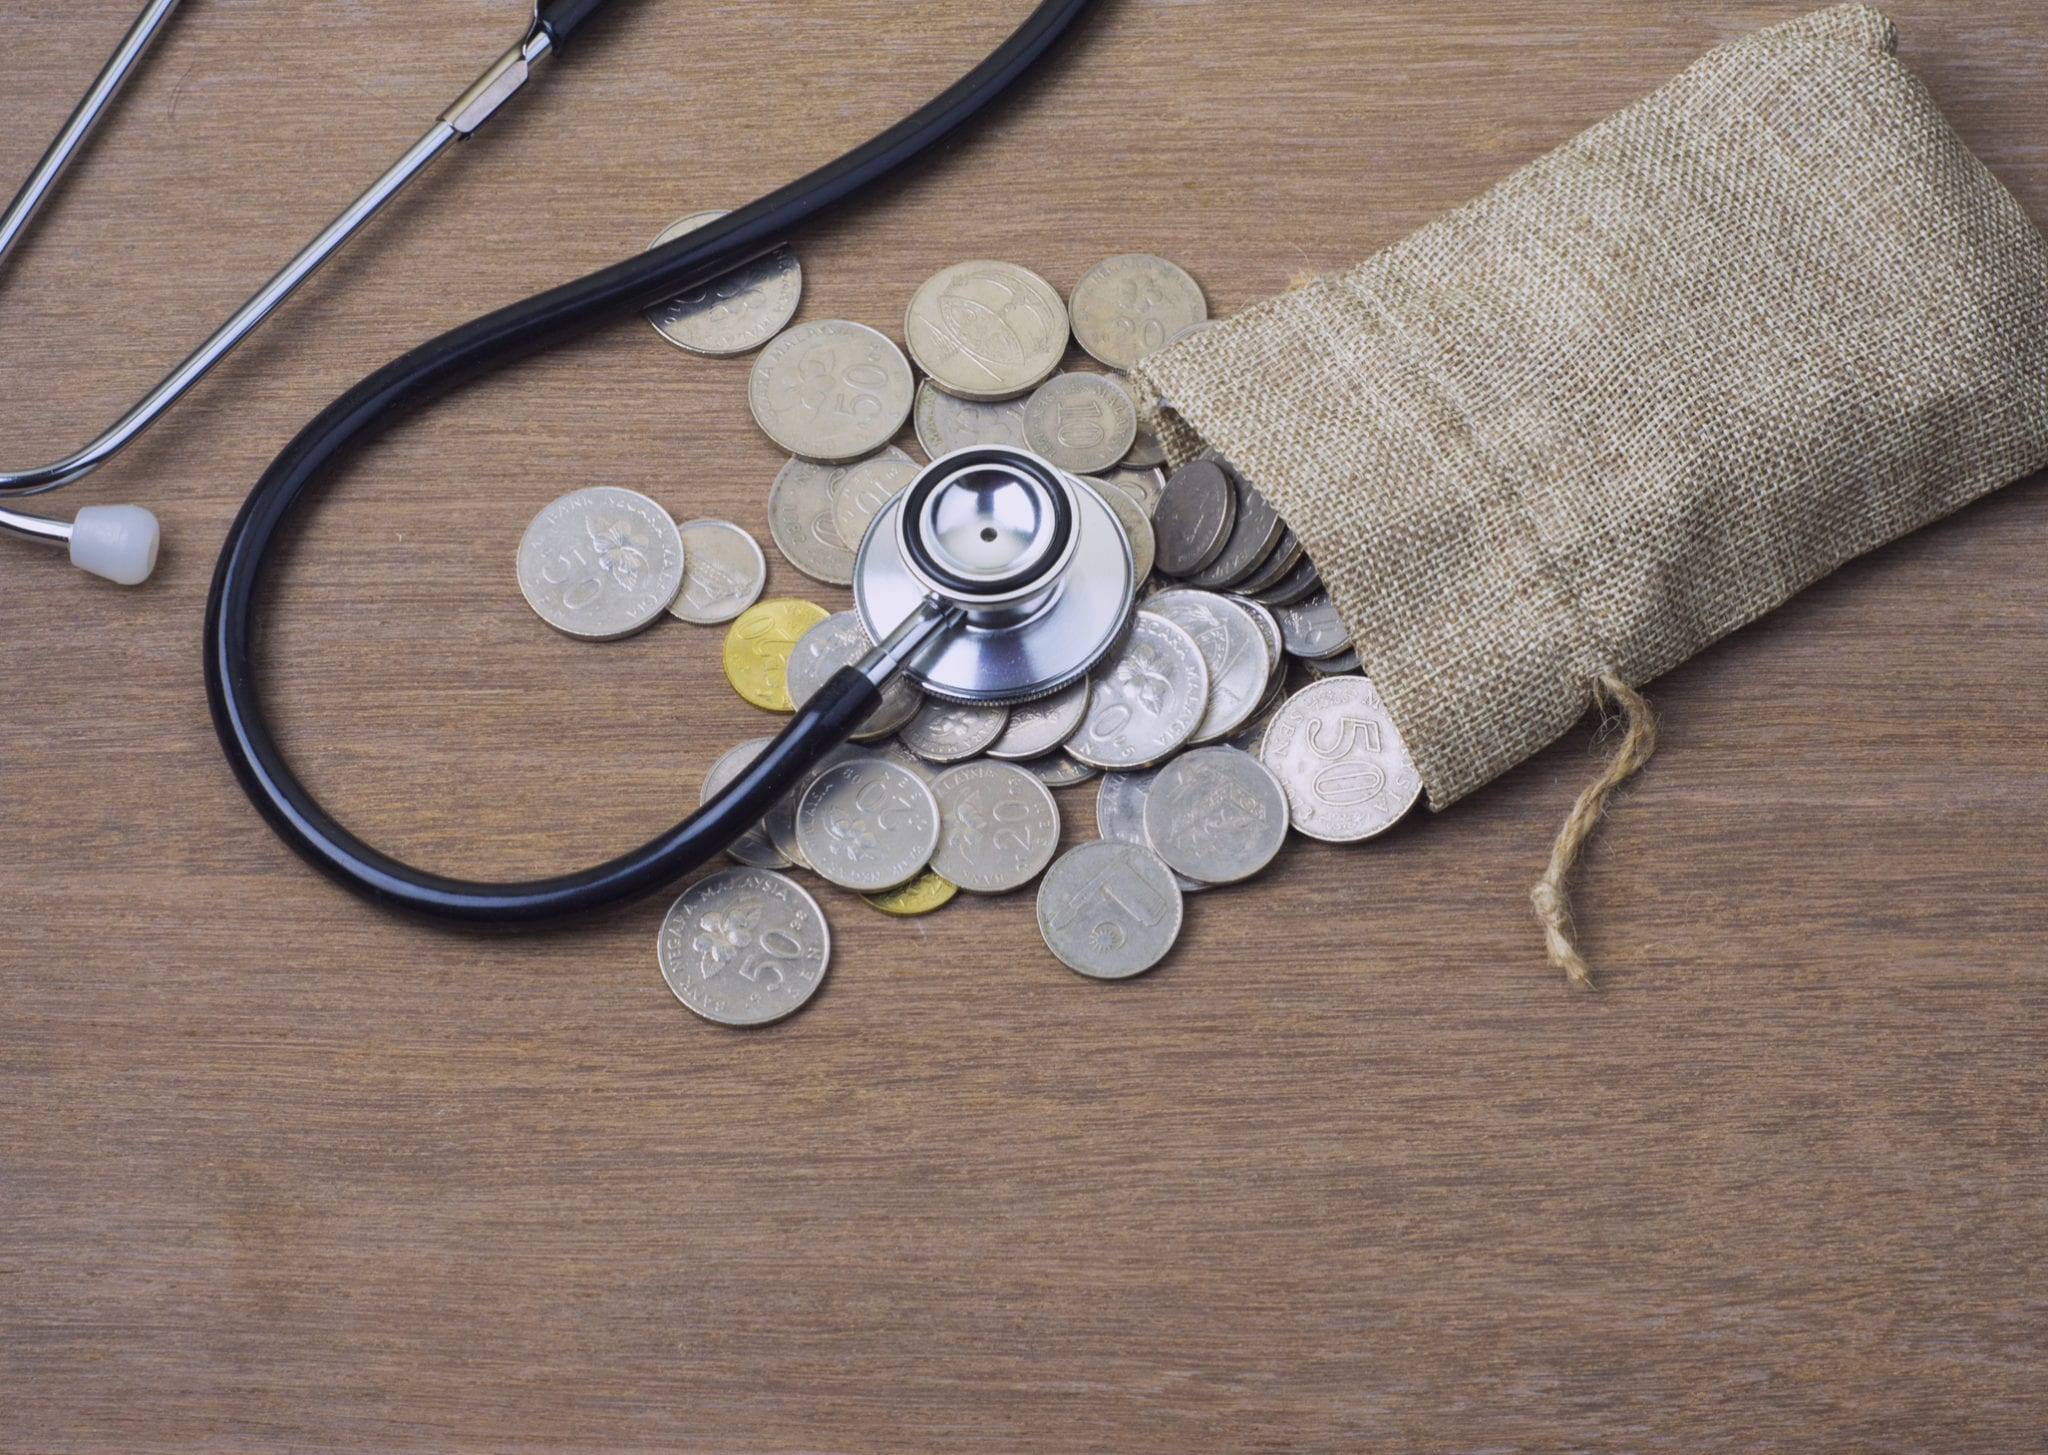 While healthcare organizations may think hiring permanent physicians is cost effective, using Locum Tenens will actually save money, among other benefits.